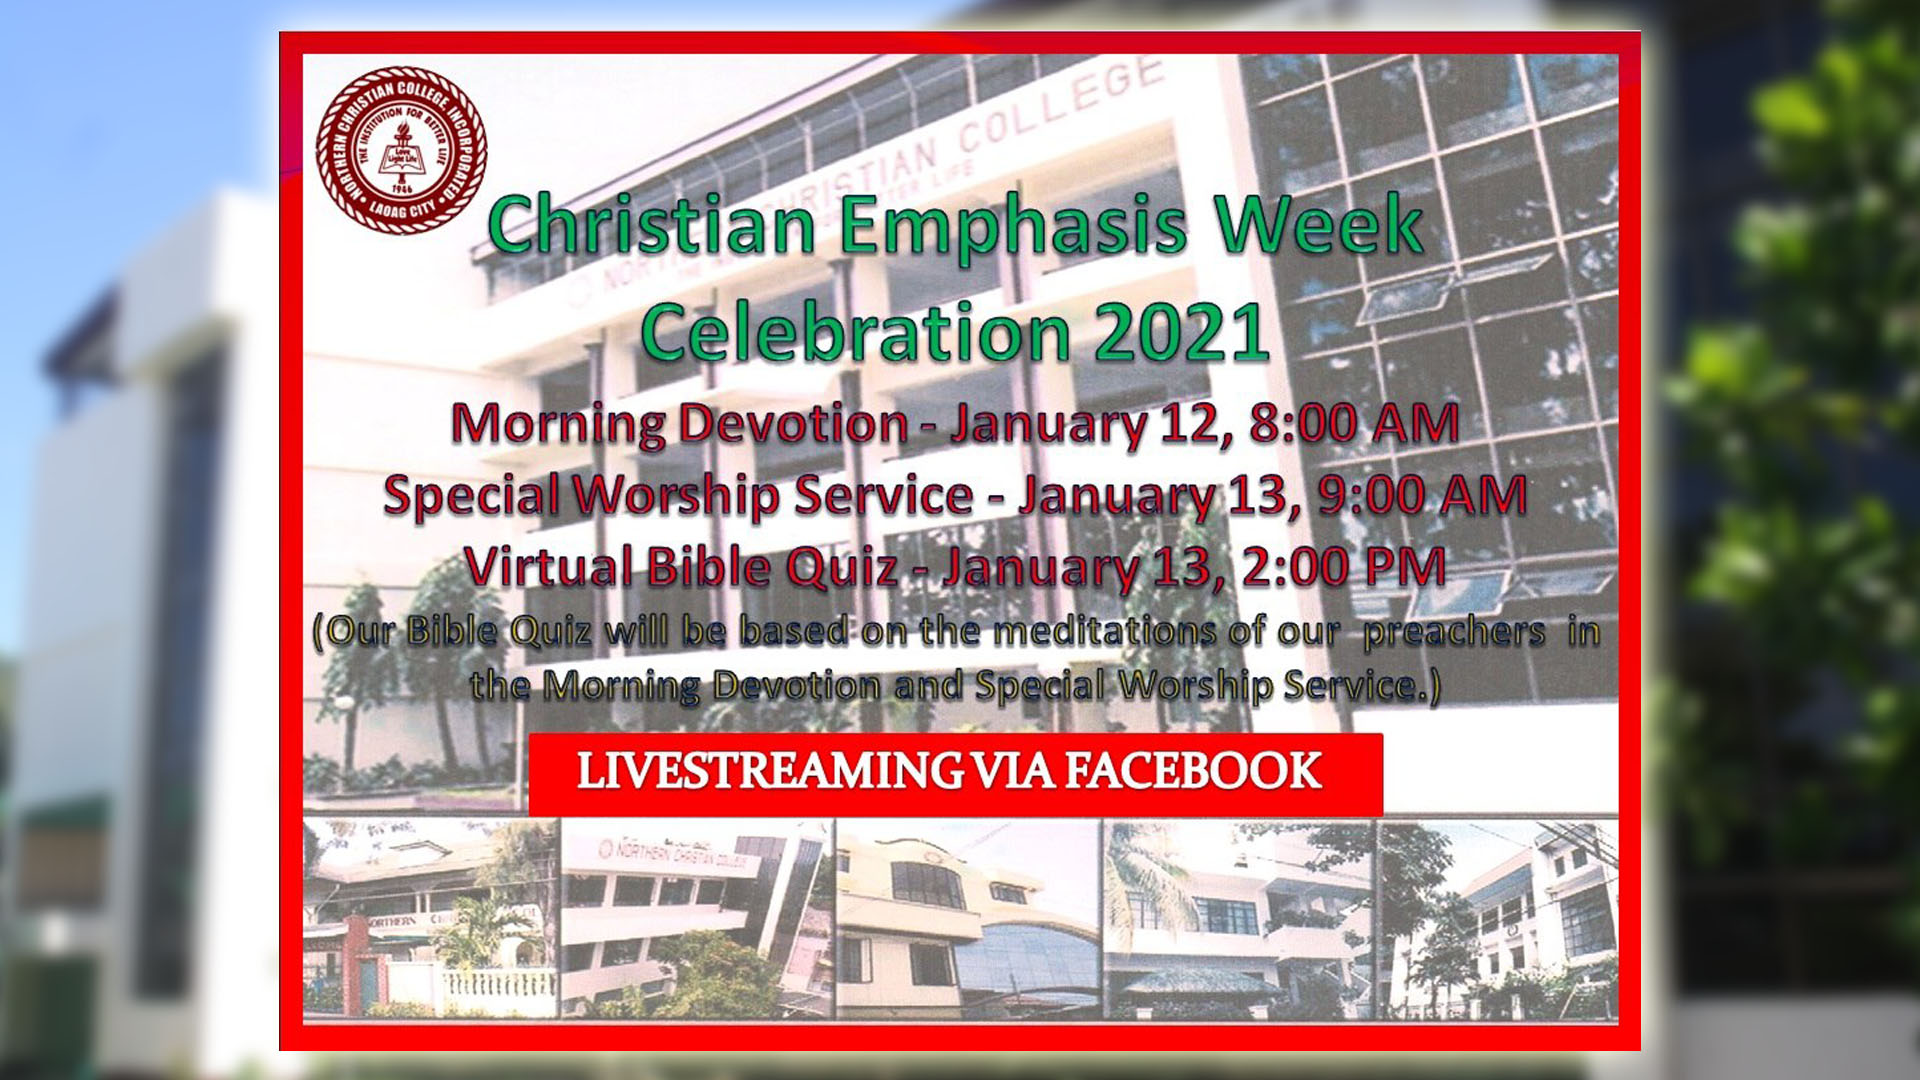 Christian Emphasis Week Celebration 2021